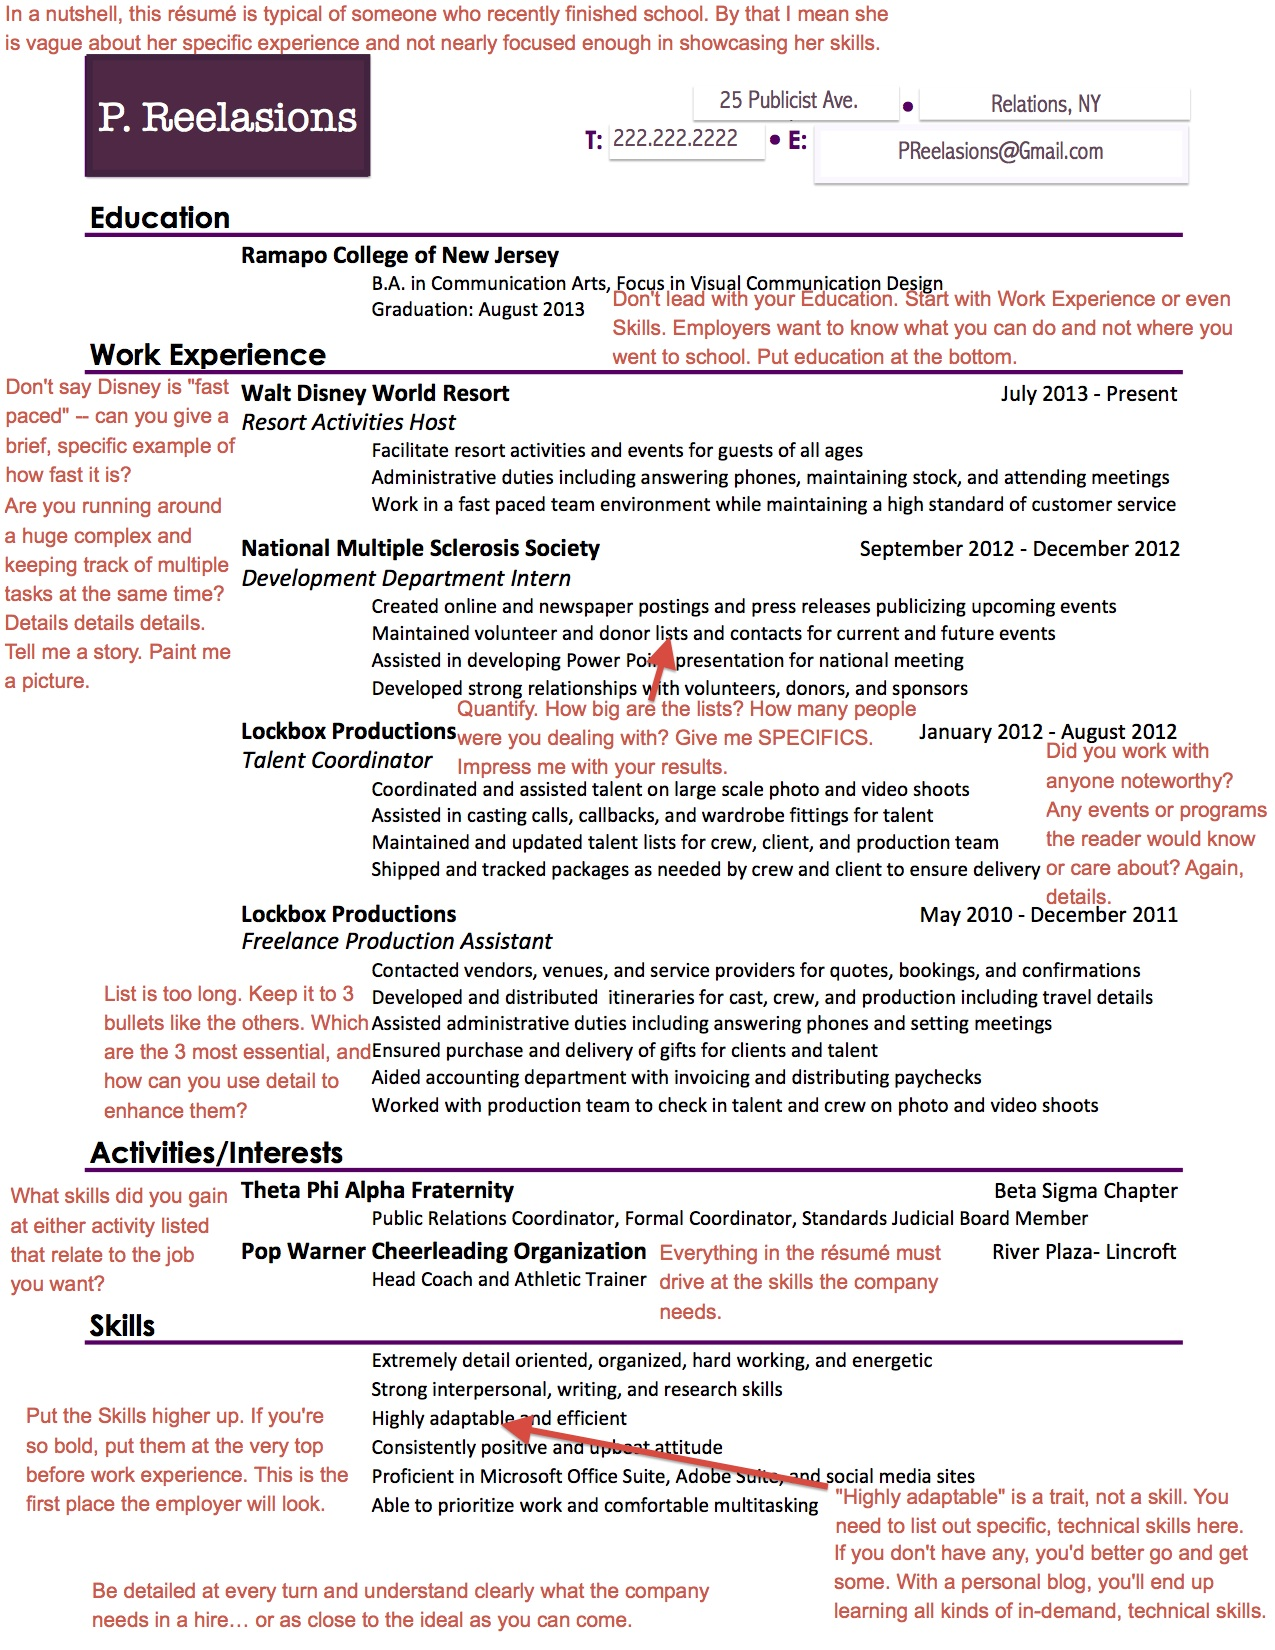 P.Reelasions Resume JPEG  Things To Put On A Resume For Skills